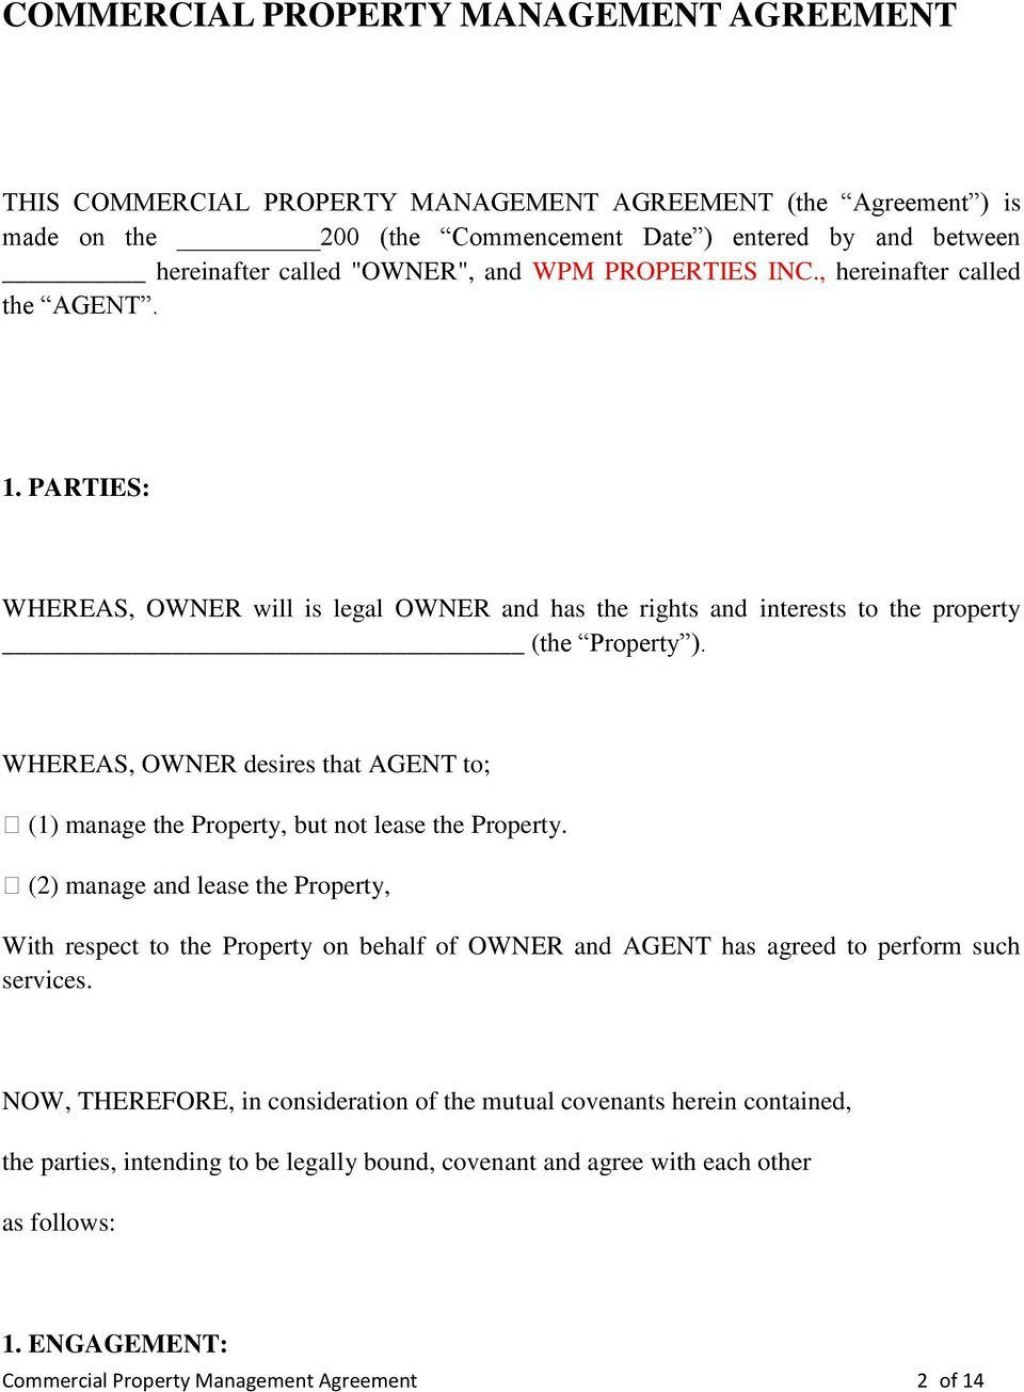 007 Unforgettable Property Management Contract Example Concept  Sample Agreement Form Template PdfLarge